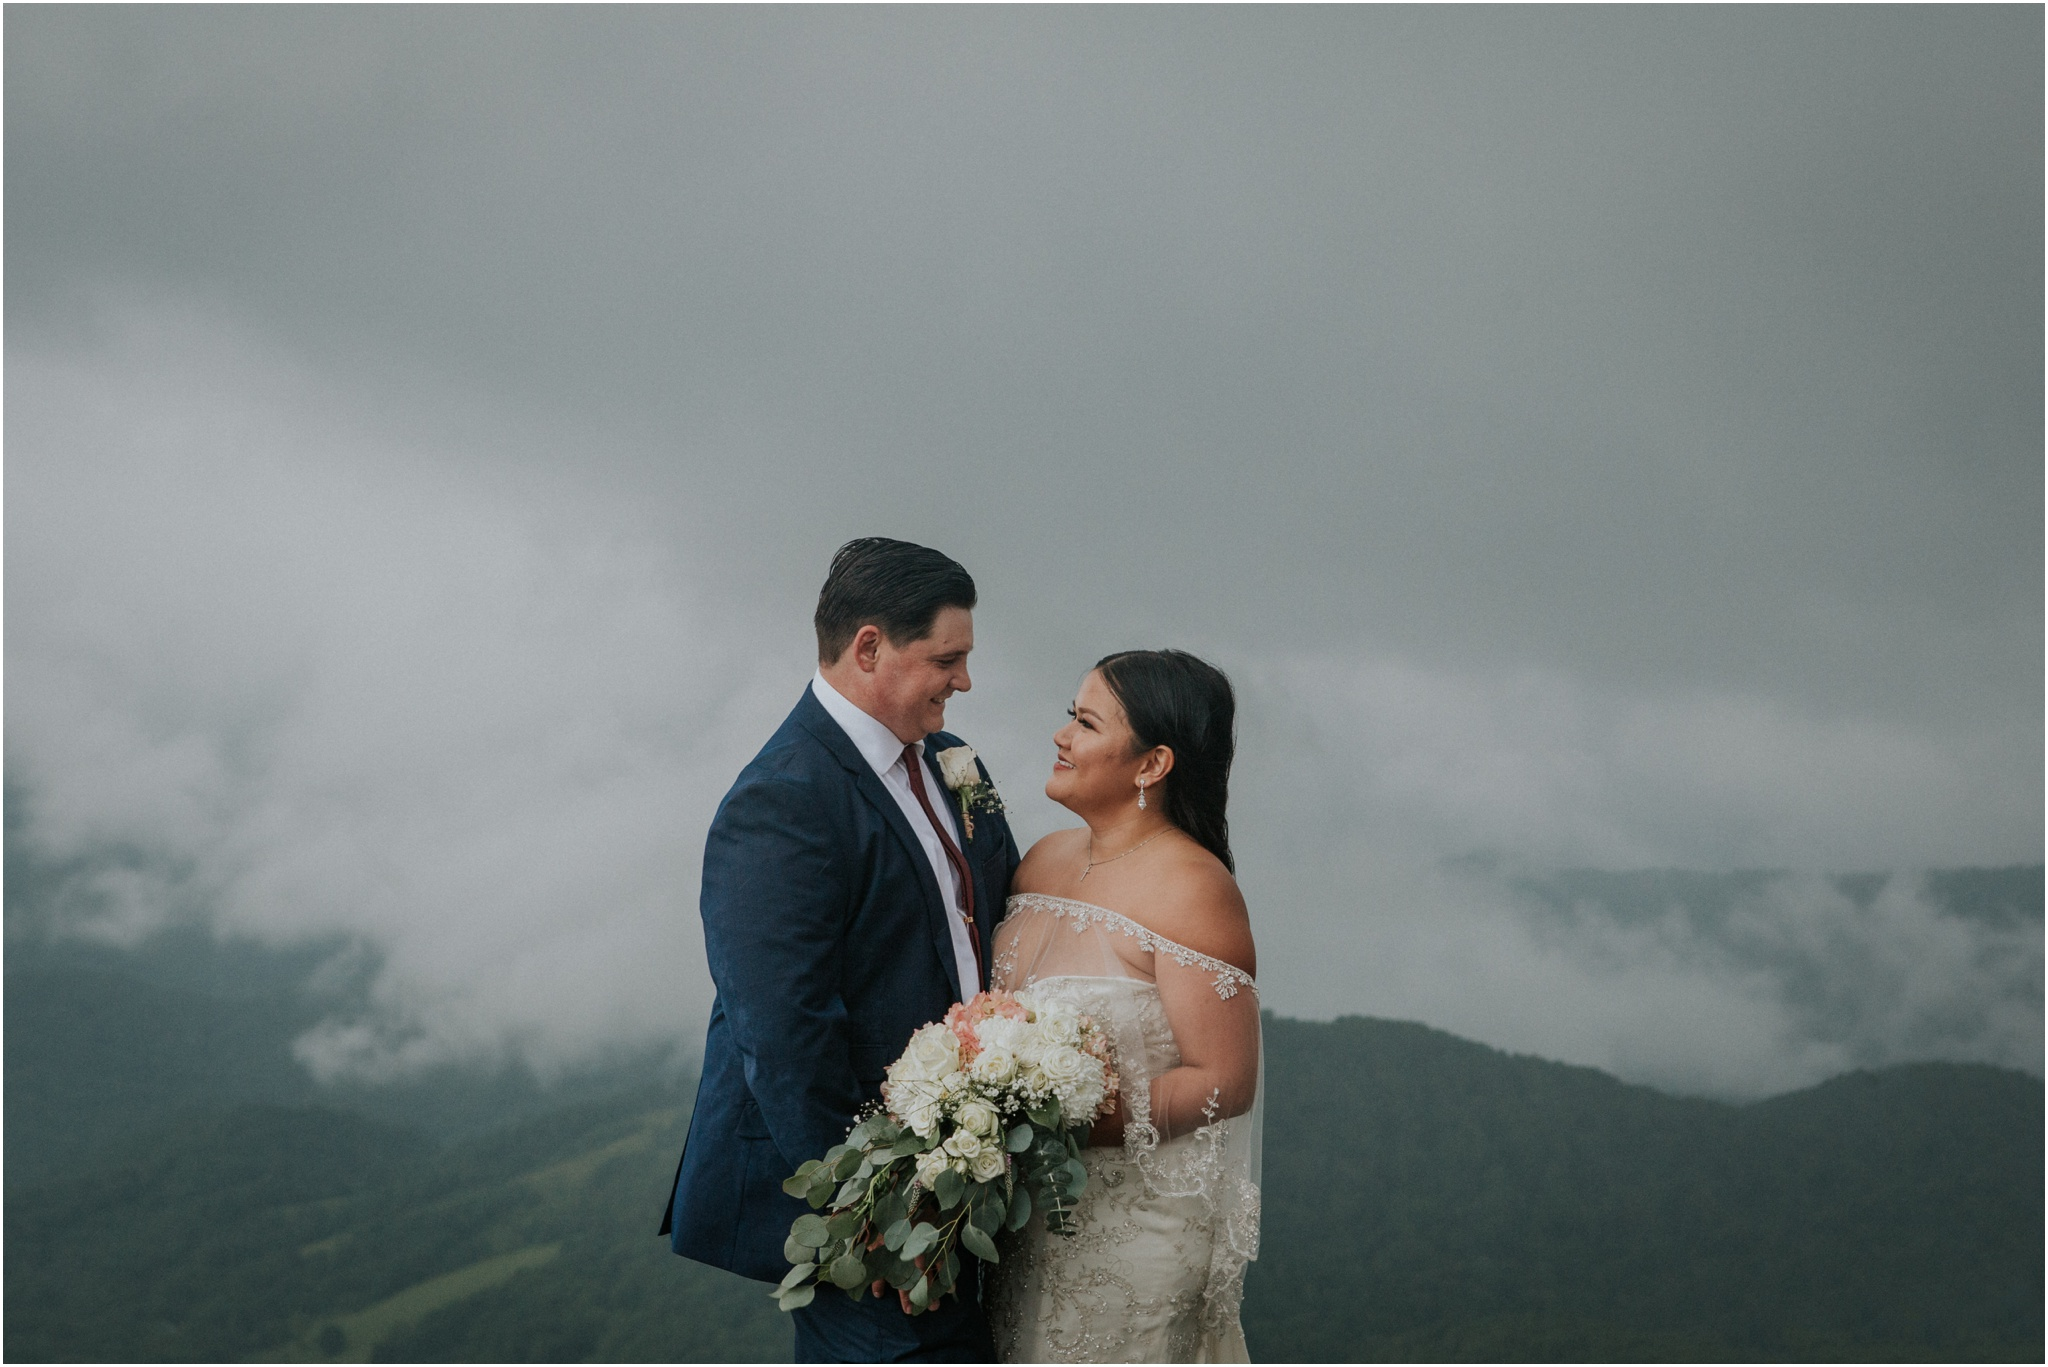 roan-mountain-tennessee-carvers-gap-stormy-intimate-bohemian-mountaintop-wedding_0100.jpg